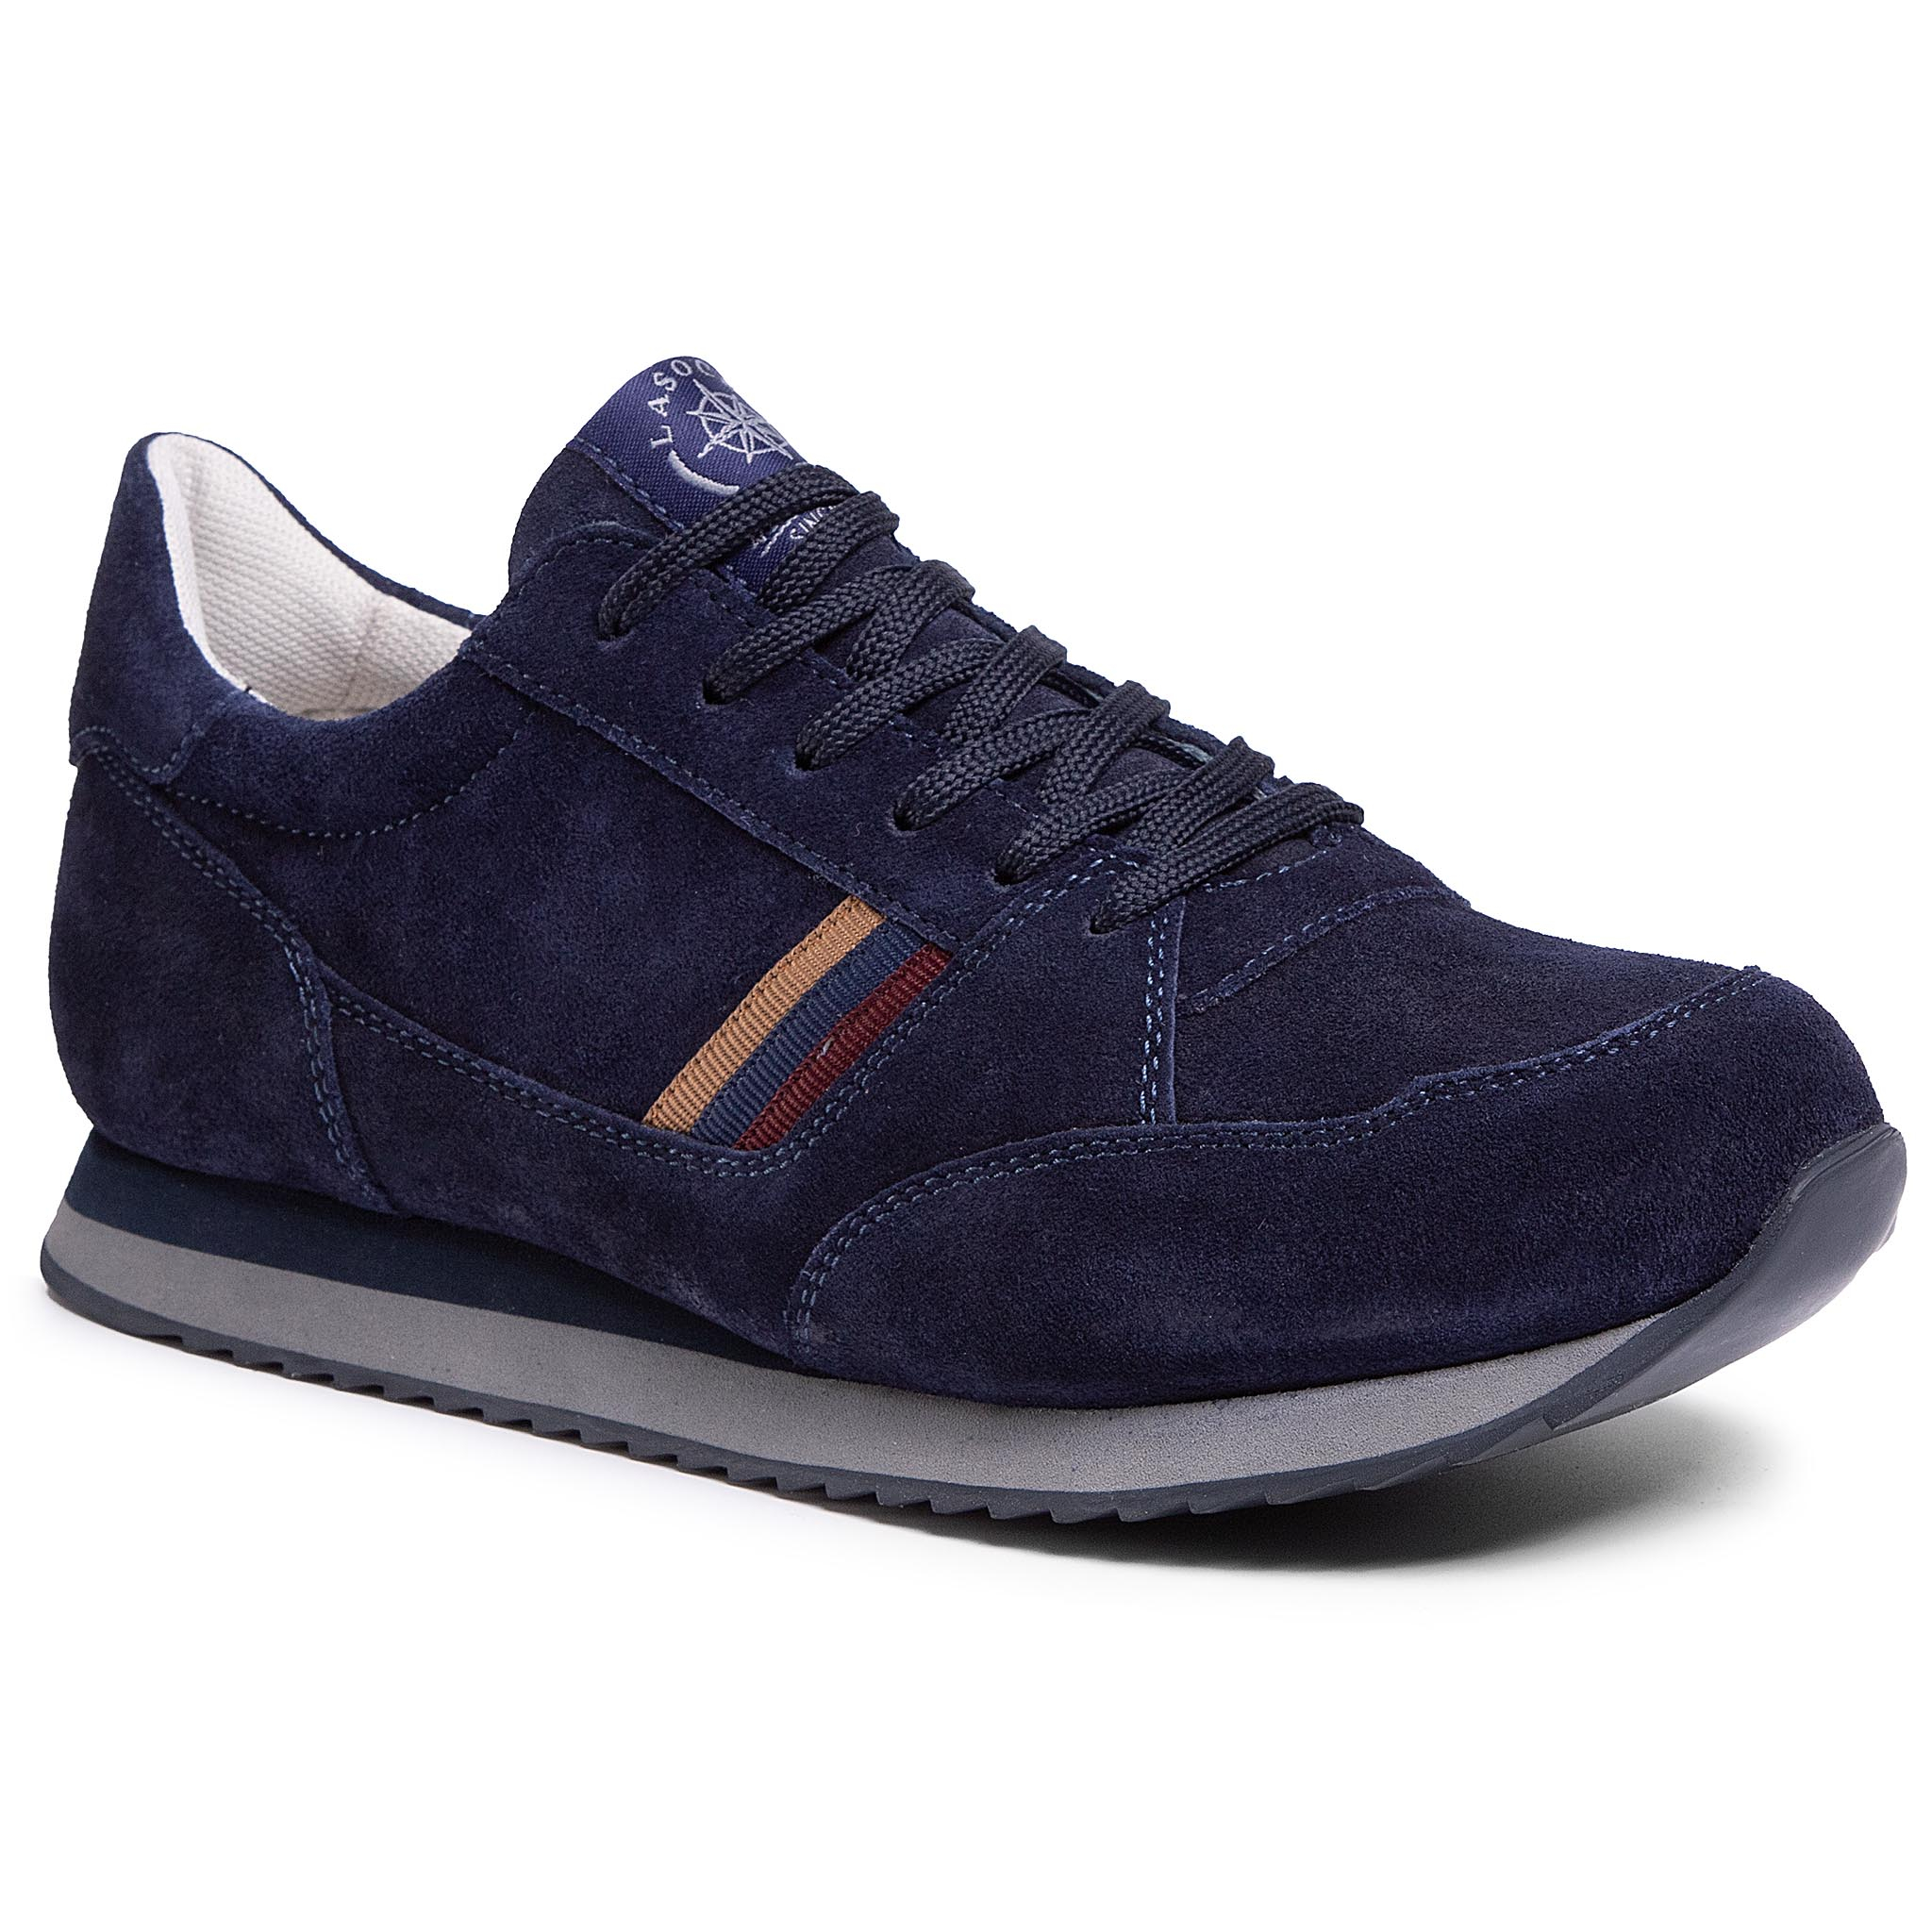 Sneakers LASOCKI FOR MEN - MI07-A864-A693-03 Cobalt Blue